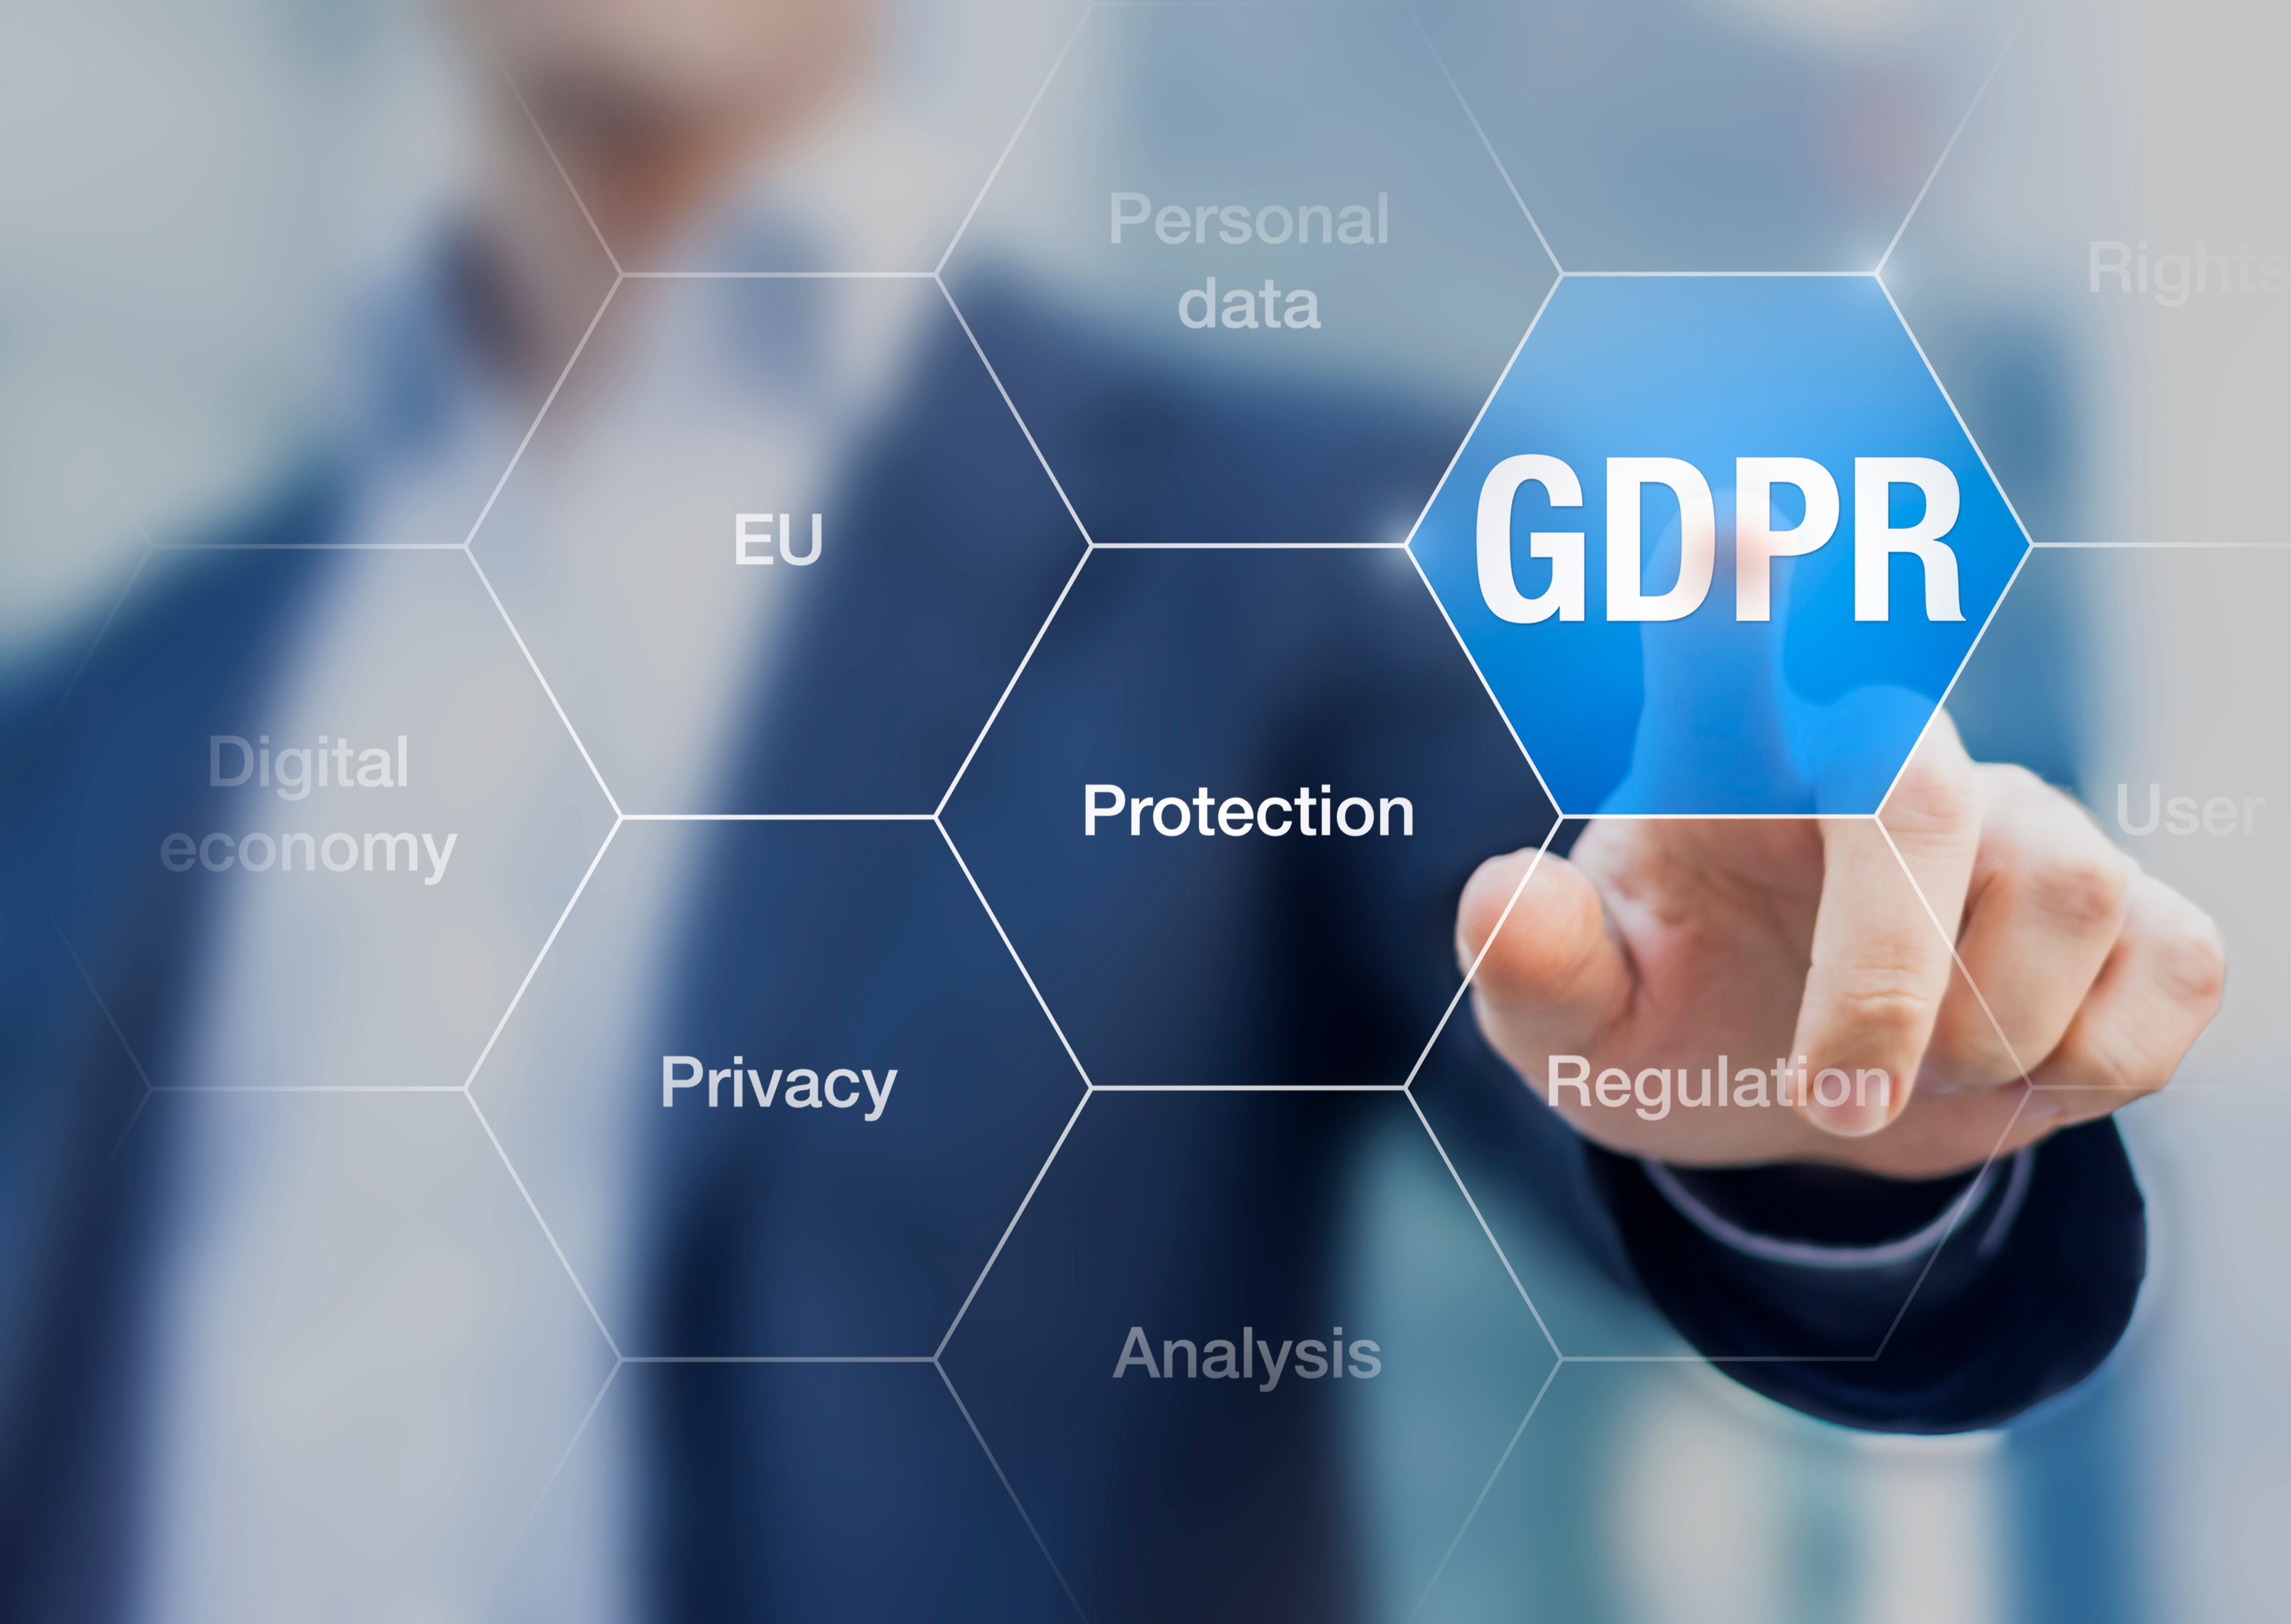 GDPR One Year On - What Australian Firms Can Learn